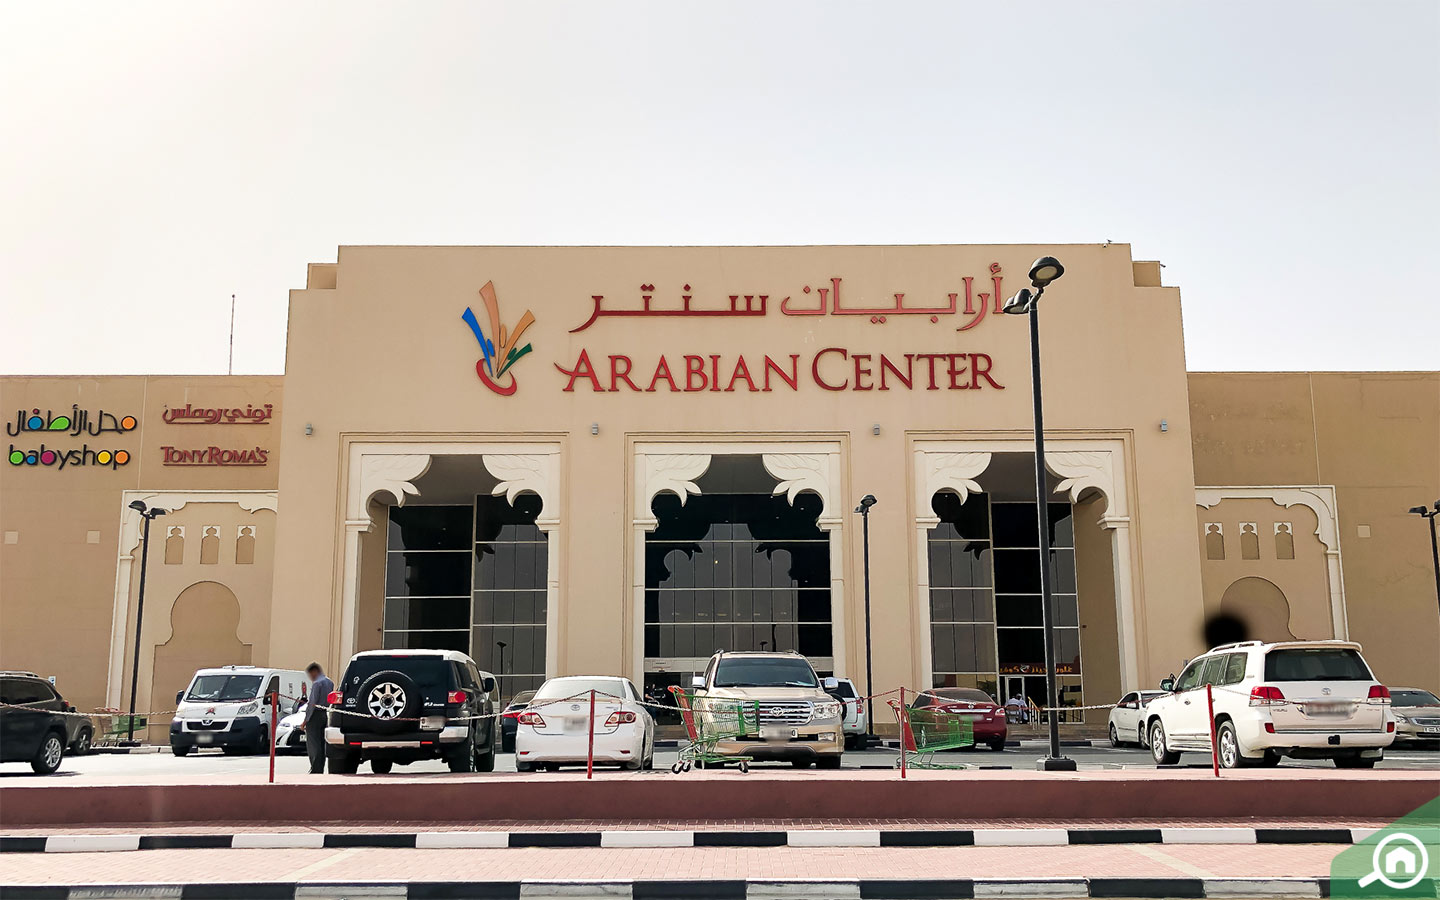 Entrance of Arabian Centre, one of the famous malls in Dubai